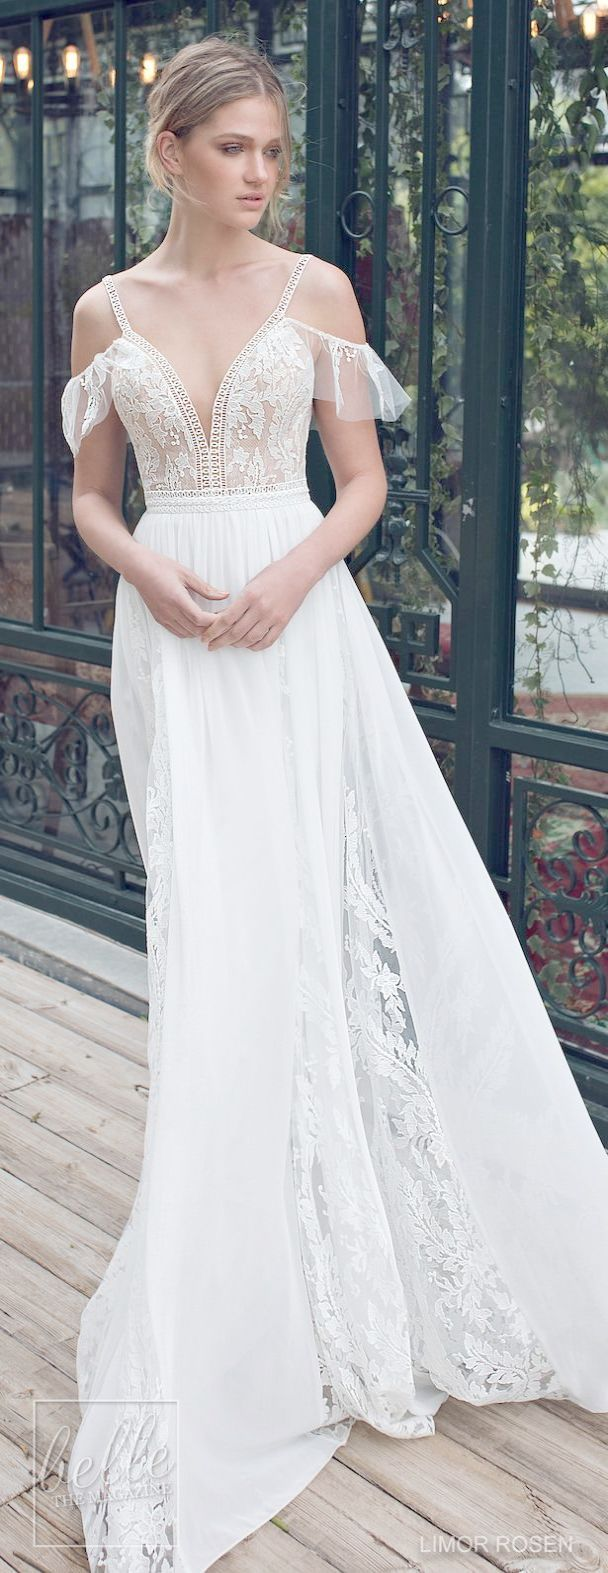 Magnificent ue dress ideas for summer wedding outfit ideas for